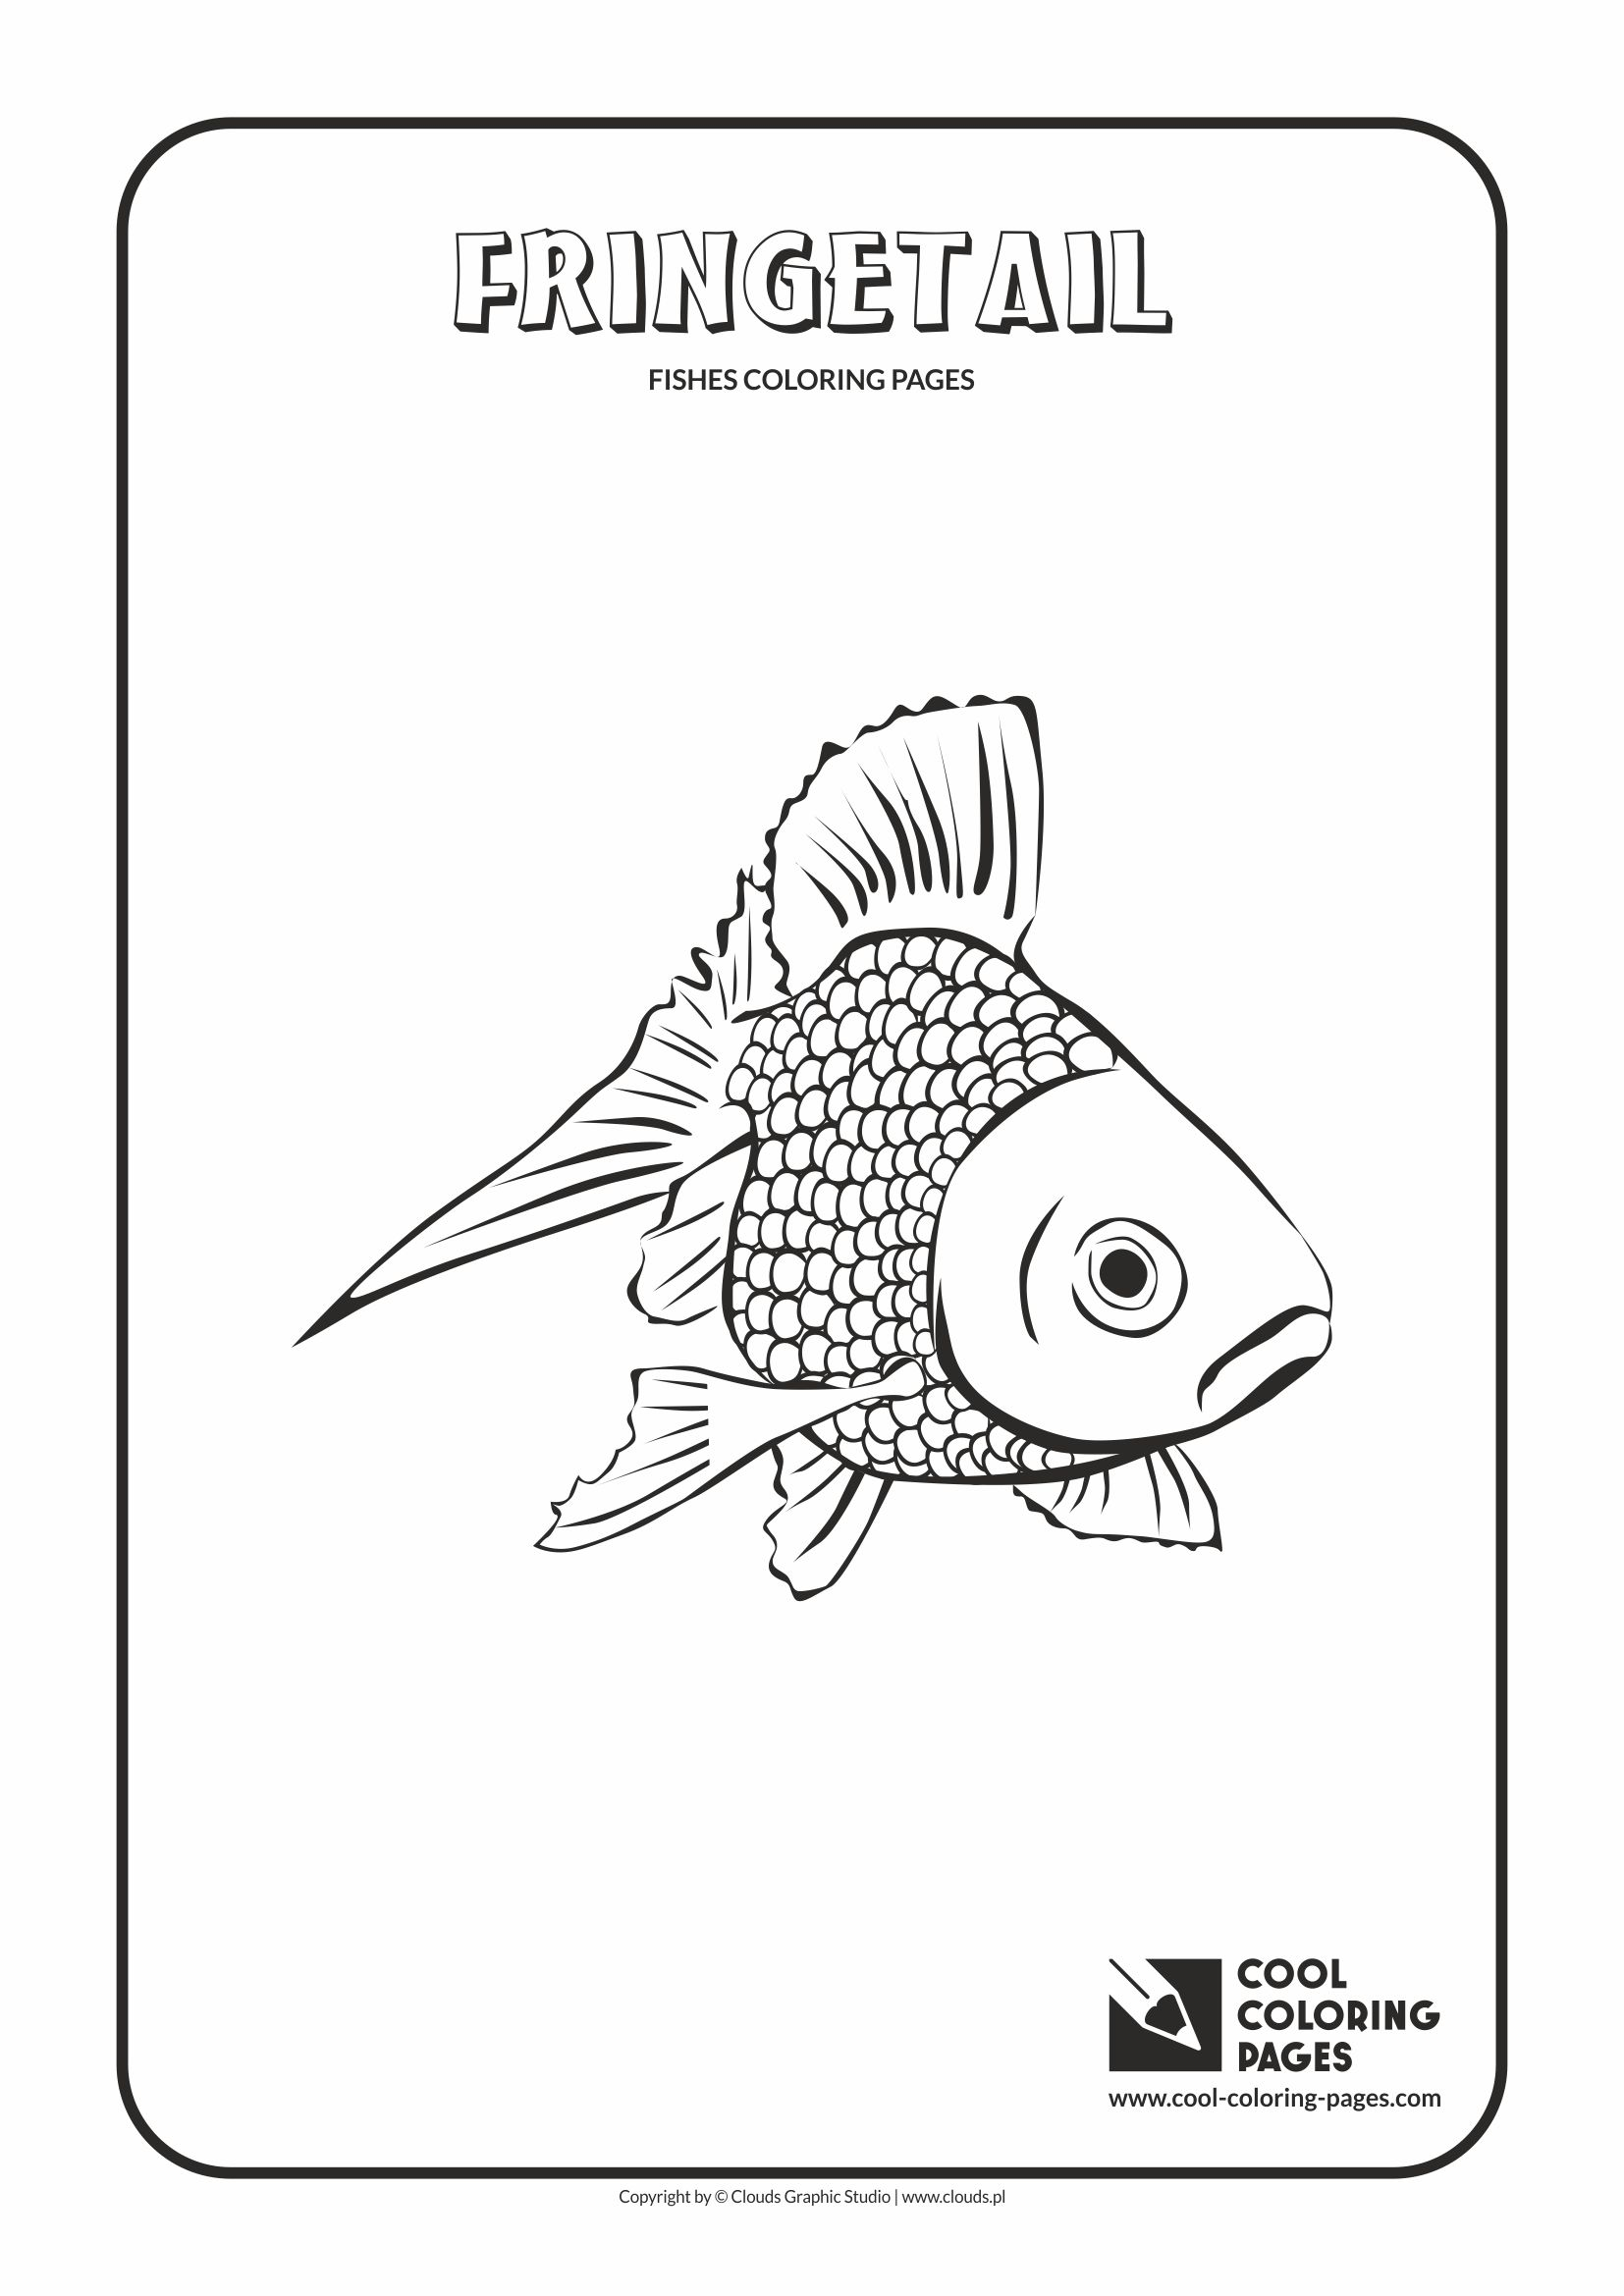 Cool Coloring Pages - Animals / Fringetail / Coloring page with fringetail